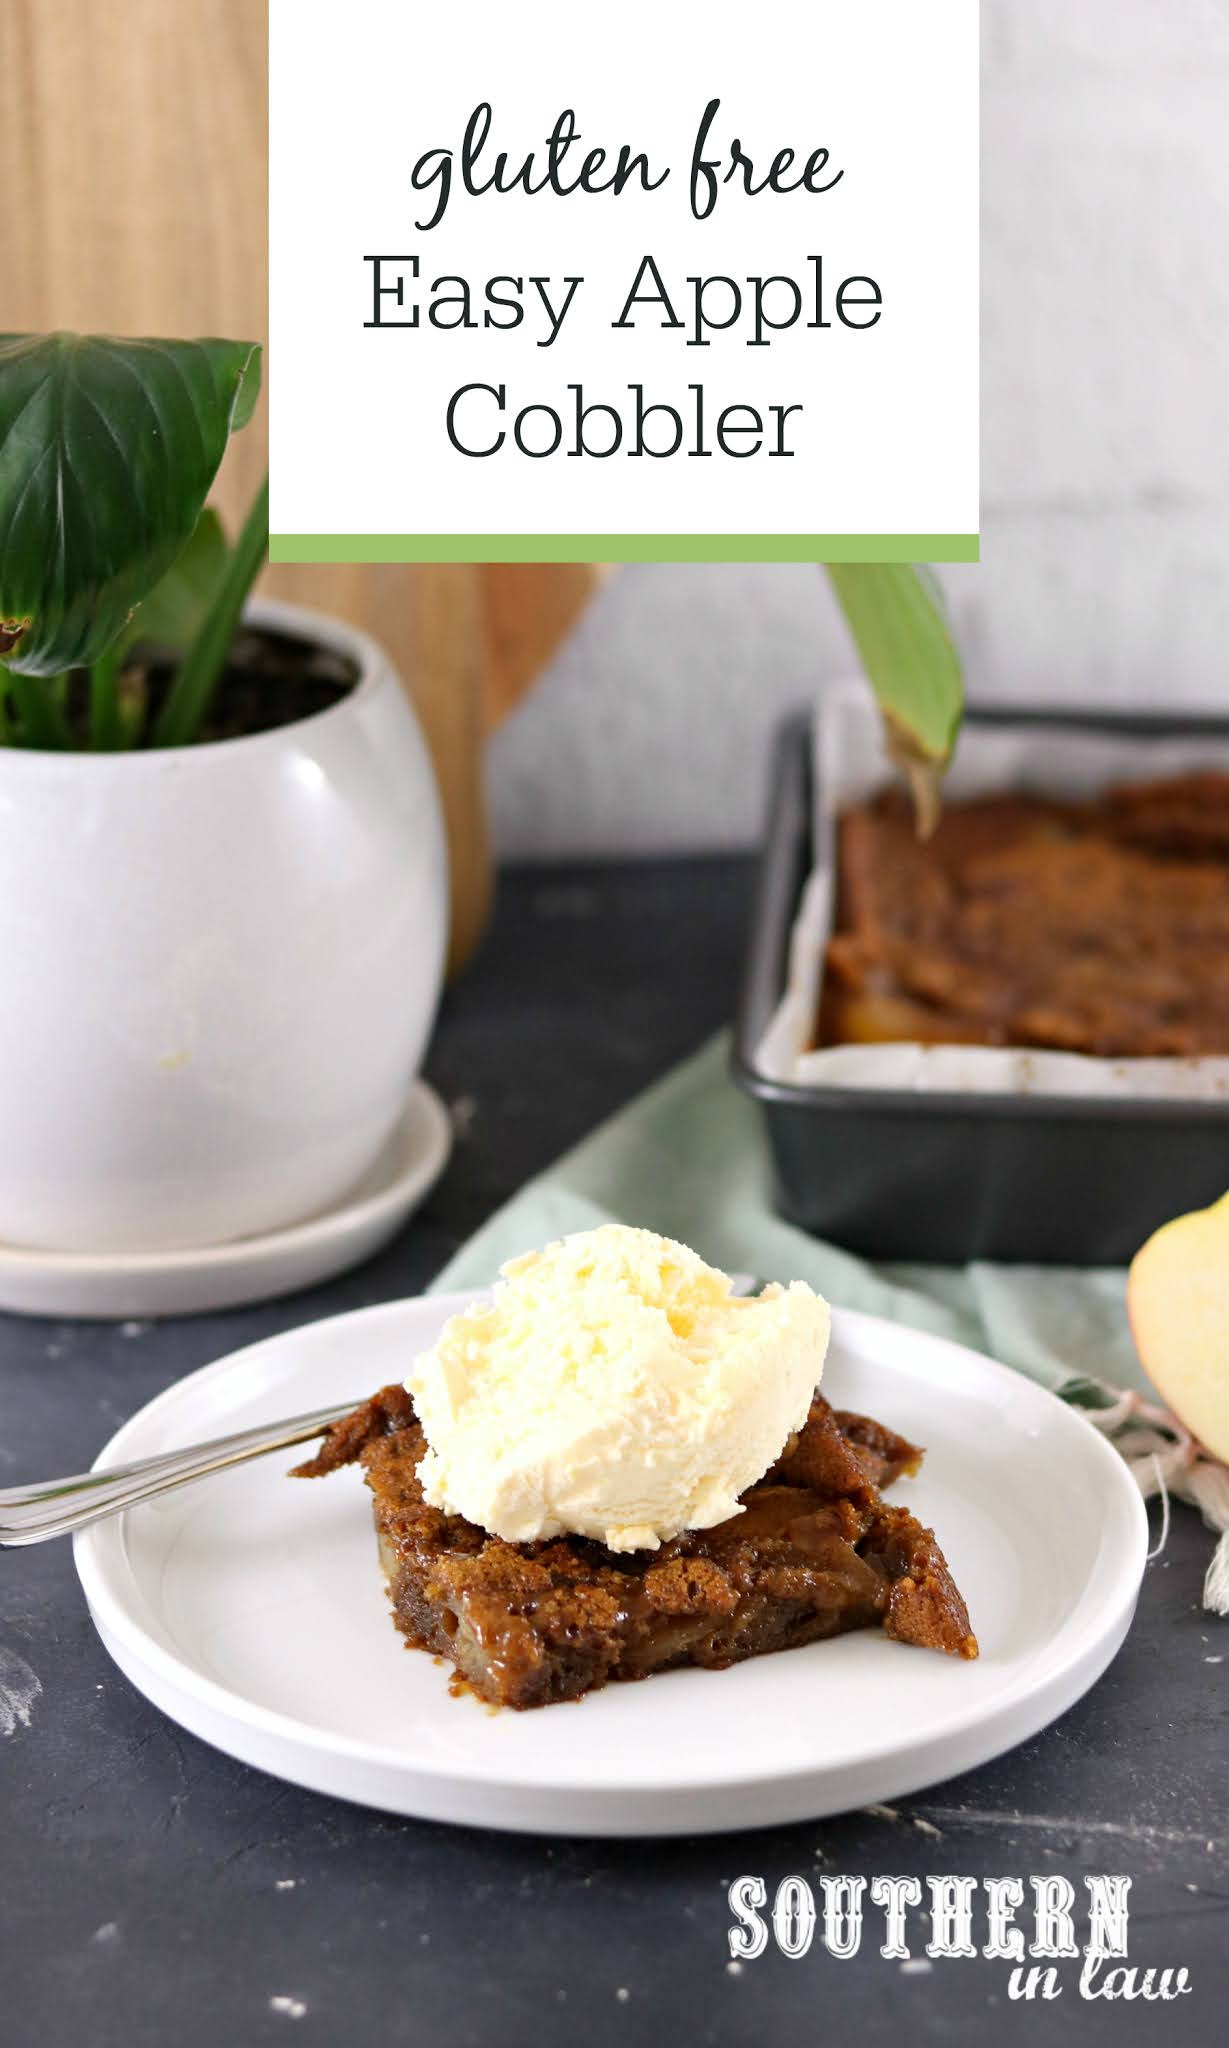 Easy Cinnamon Apple Cobbler Recipe (Gluten Free)